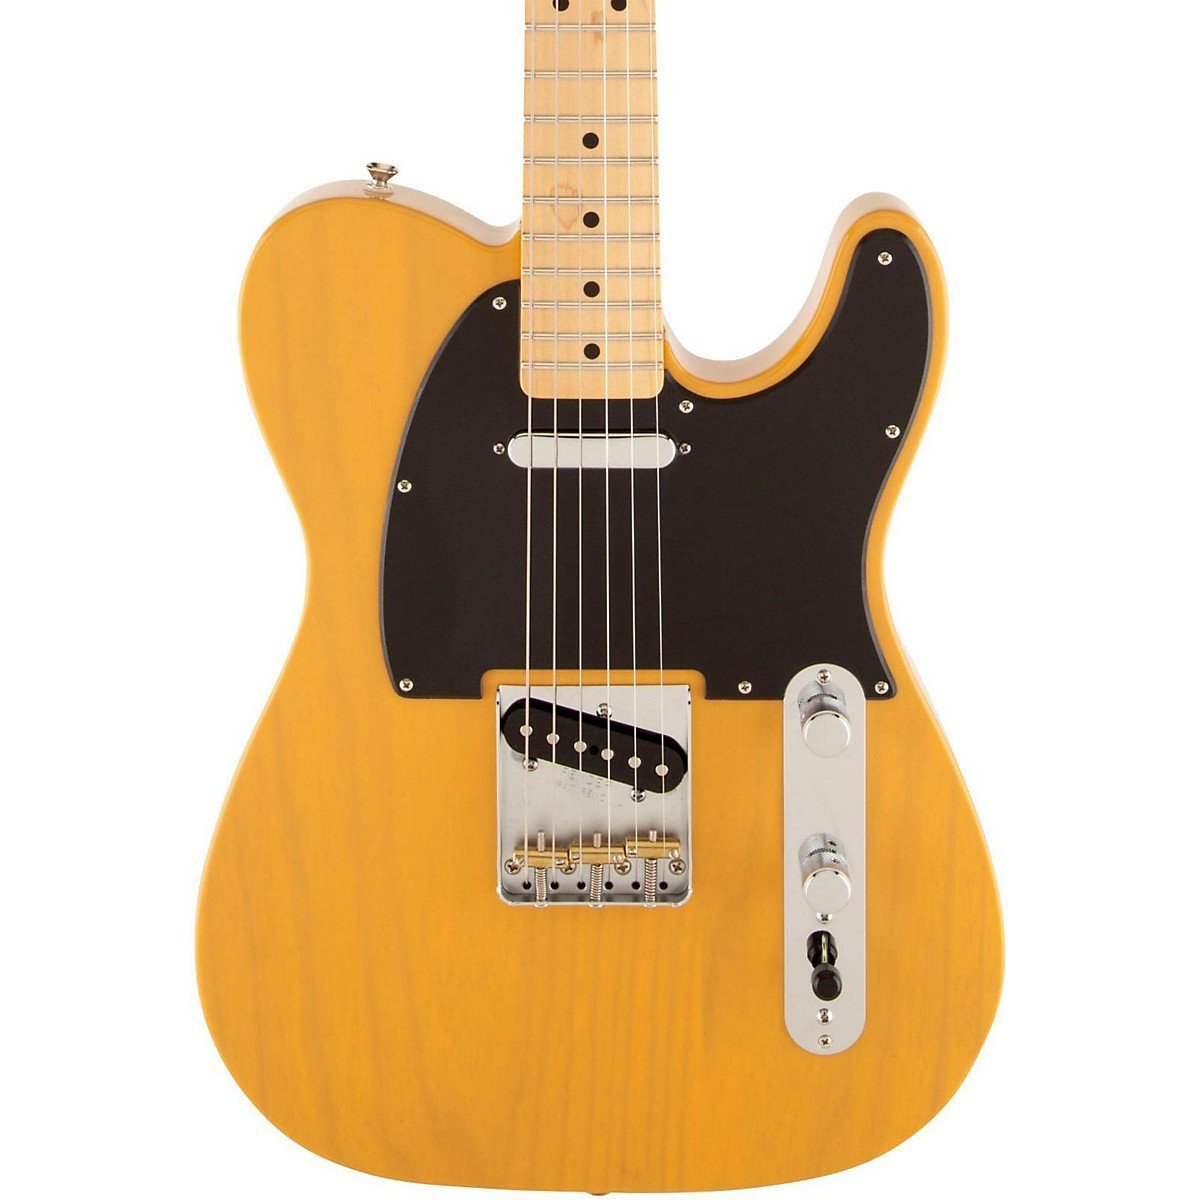 Fender FSR Special Edition Deluxe Telecaster Ash Butterscotch Blonde フェンダー スタンダード テレキャスター エレ